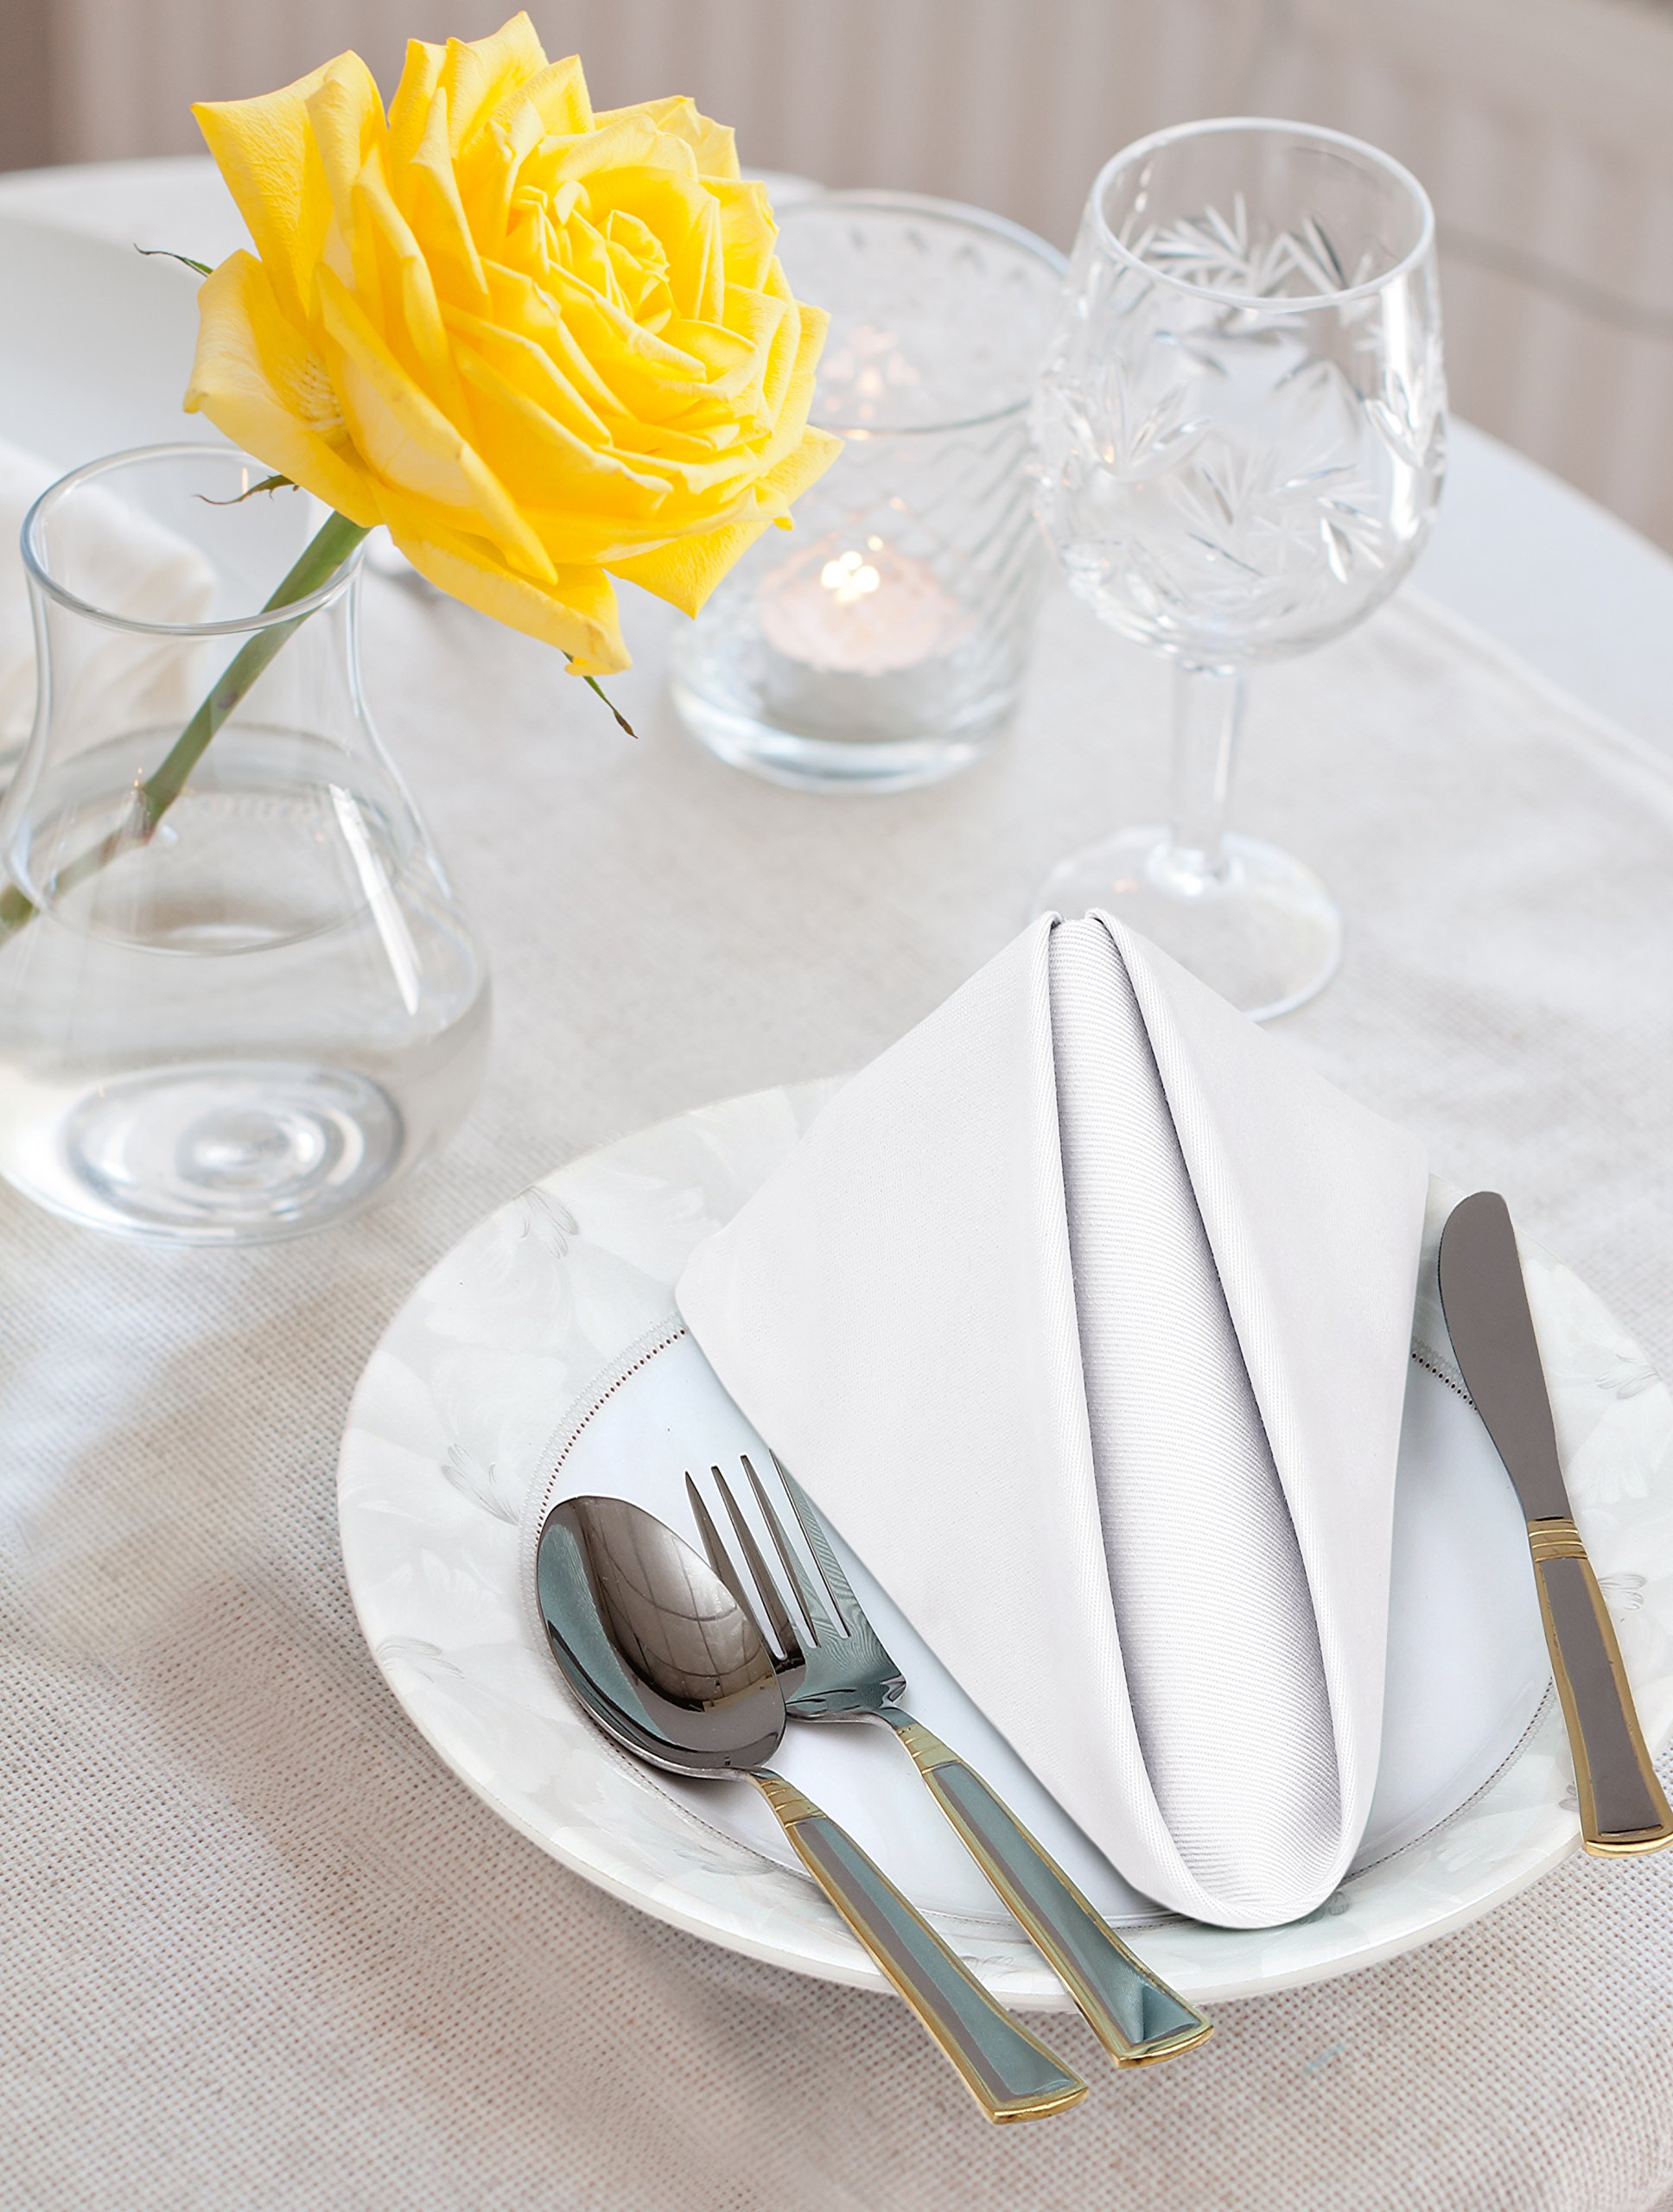 Cotton Dinner Napkins White - 12 Pack (18 inches x18 inches) Soft and Comfortable - Durable Hotel Quality - Ideal for Events and Regular Home Use - by Utopia Bedding by Utopia Bedding (Image #2)